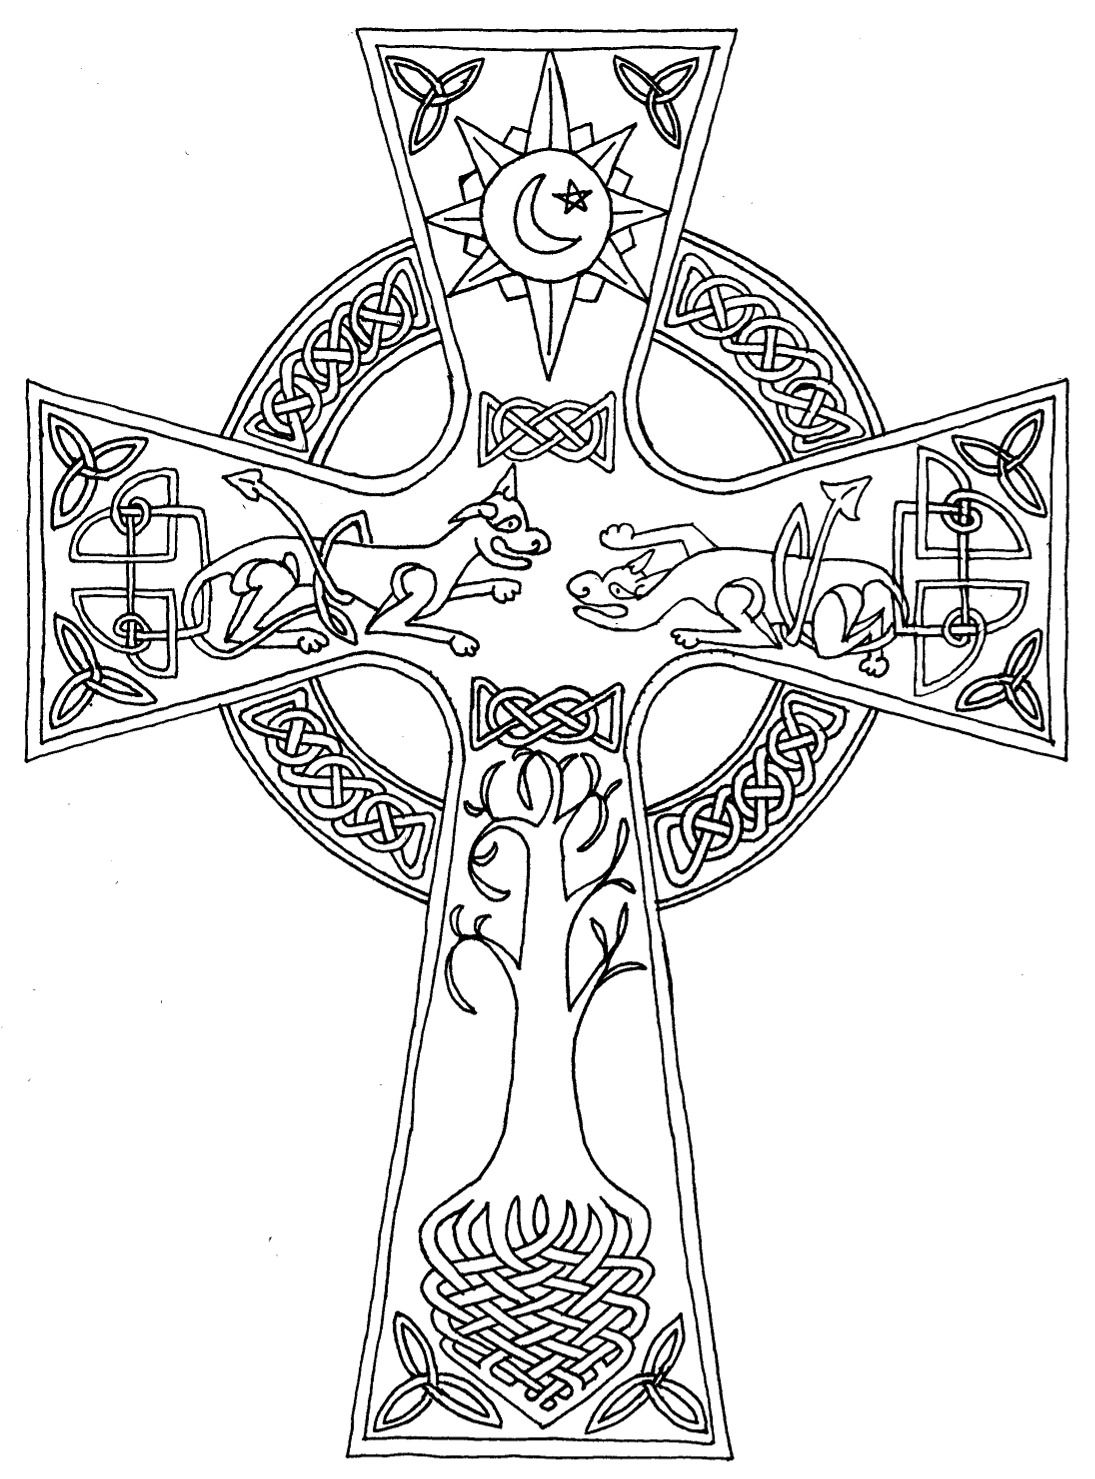 irish coloring pages luck of the irish colouring page irish pages coloring